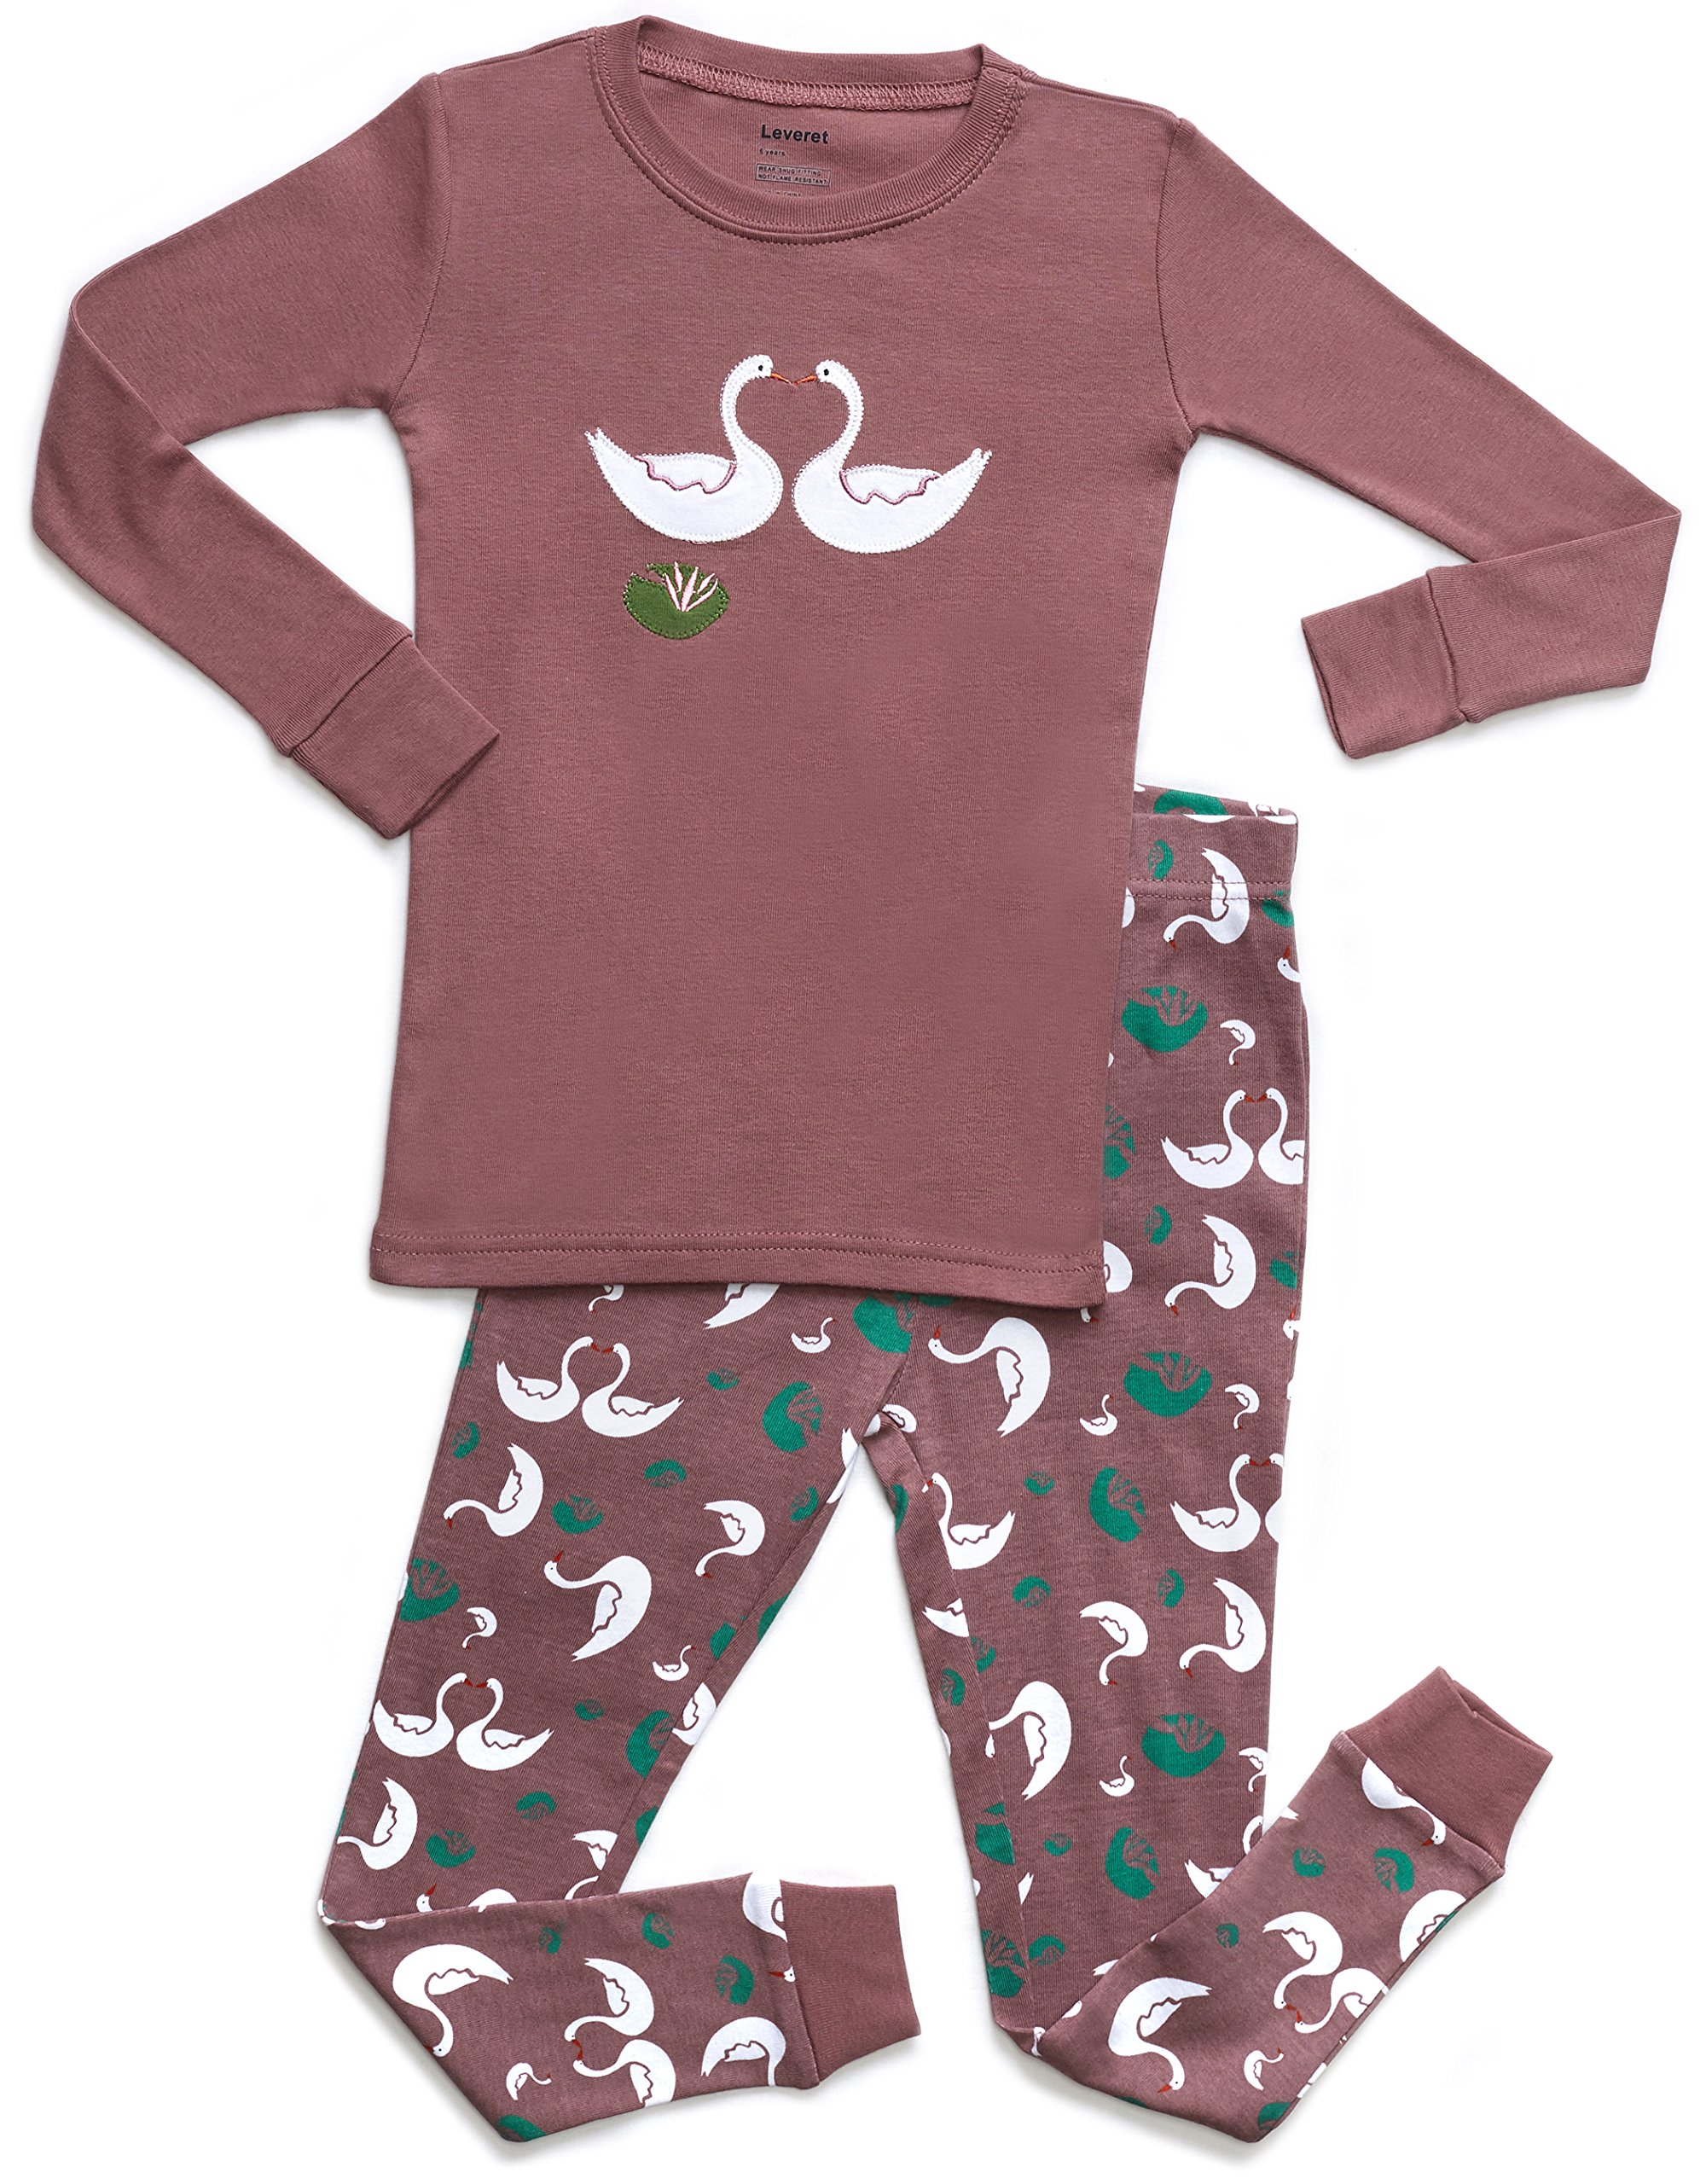 Leveret Organic Cotton Swan 2 Piece Pajama Set 8 Years by Leveret (Image #1)